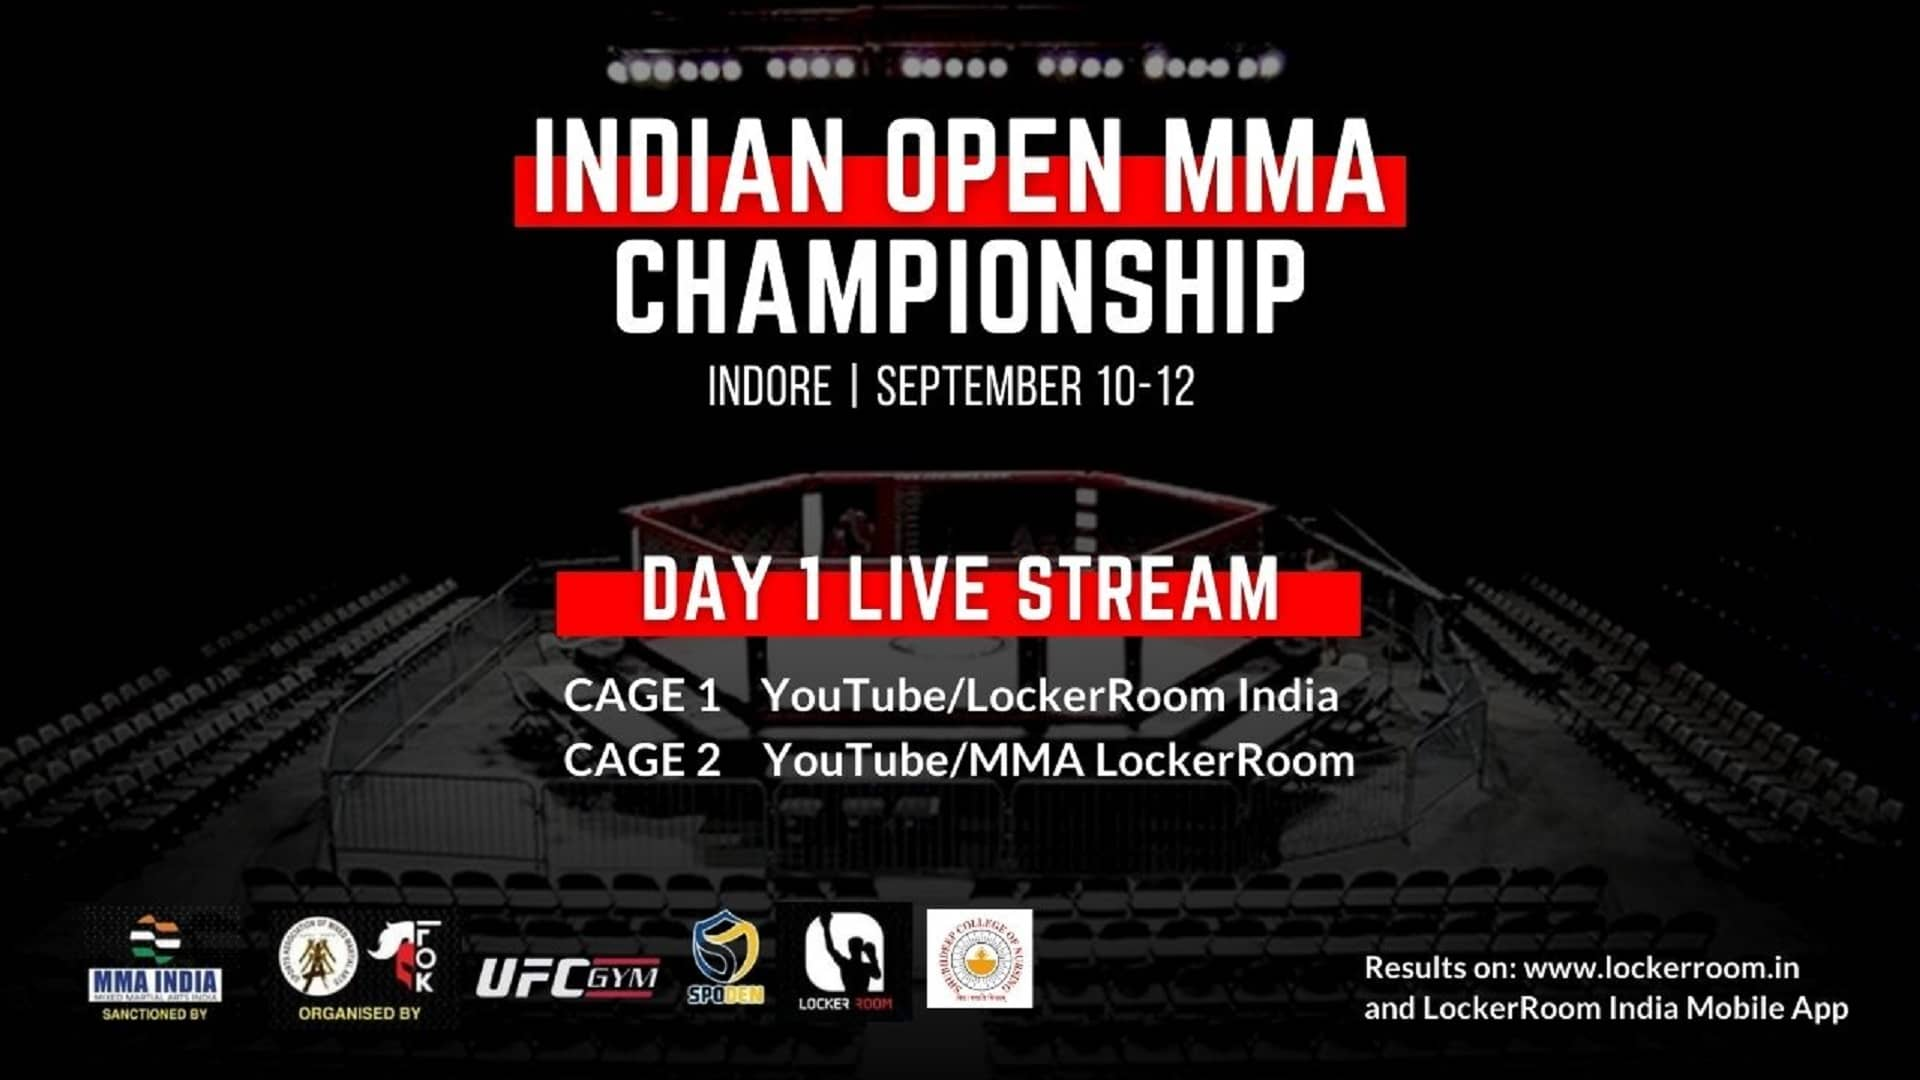 Indian-Open-MMA-Championships-2021-Indore